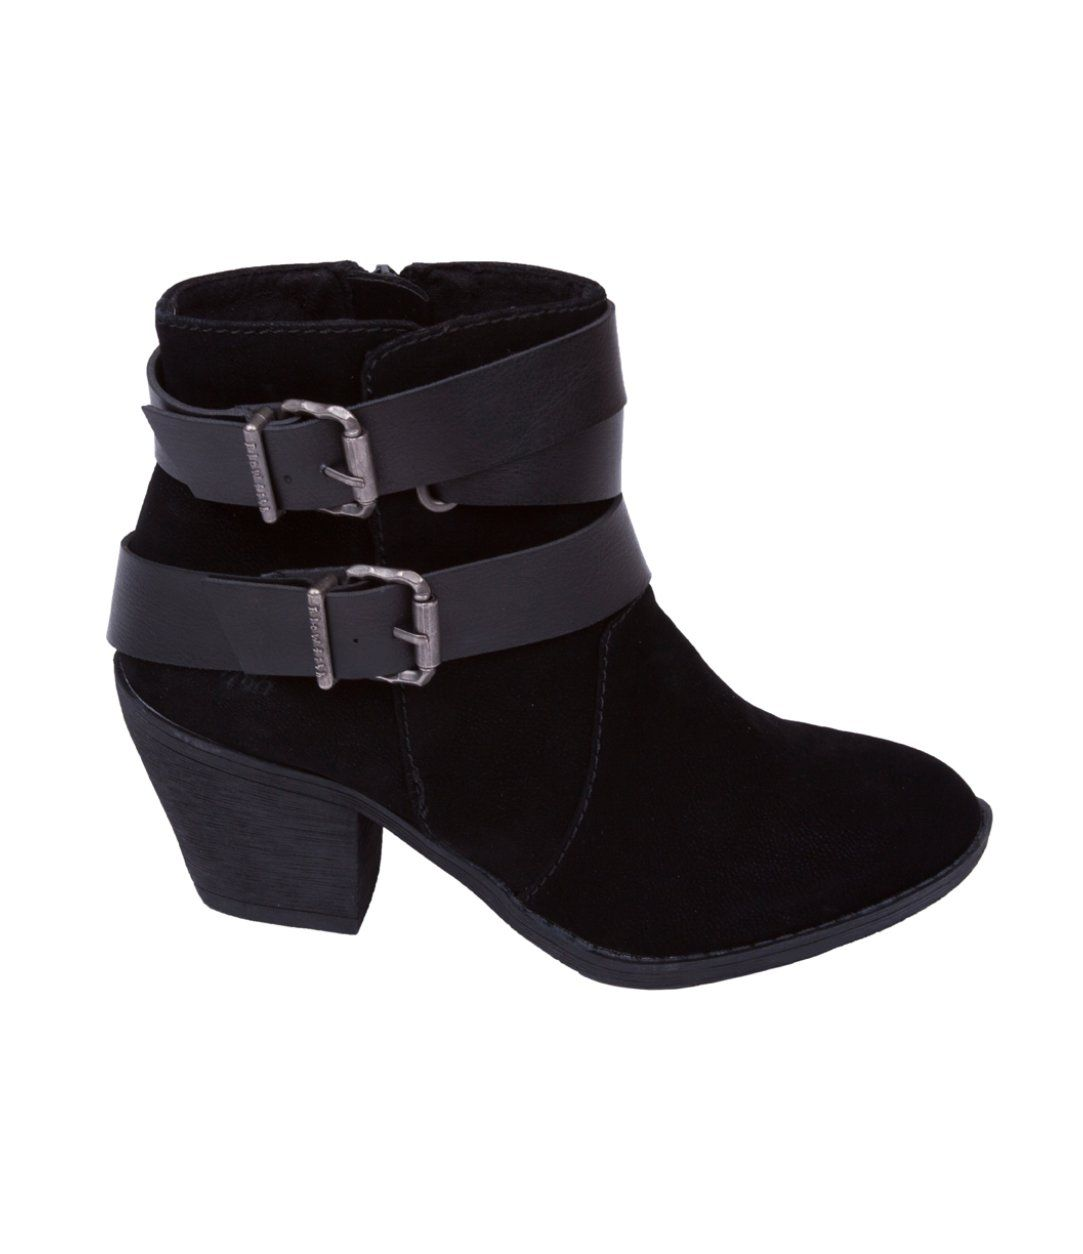 Sworn: Black Fawn | Blowfish Shoes | $59 | Booties | Boots | Cowboy | Cowgirl | Wedges | Heels | Fall Fashion